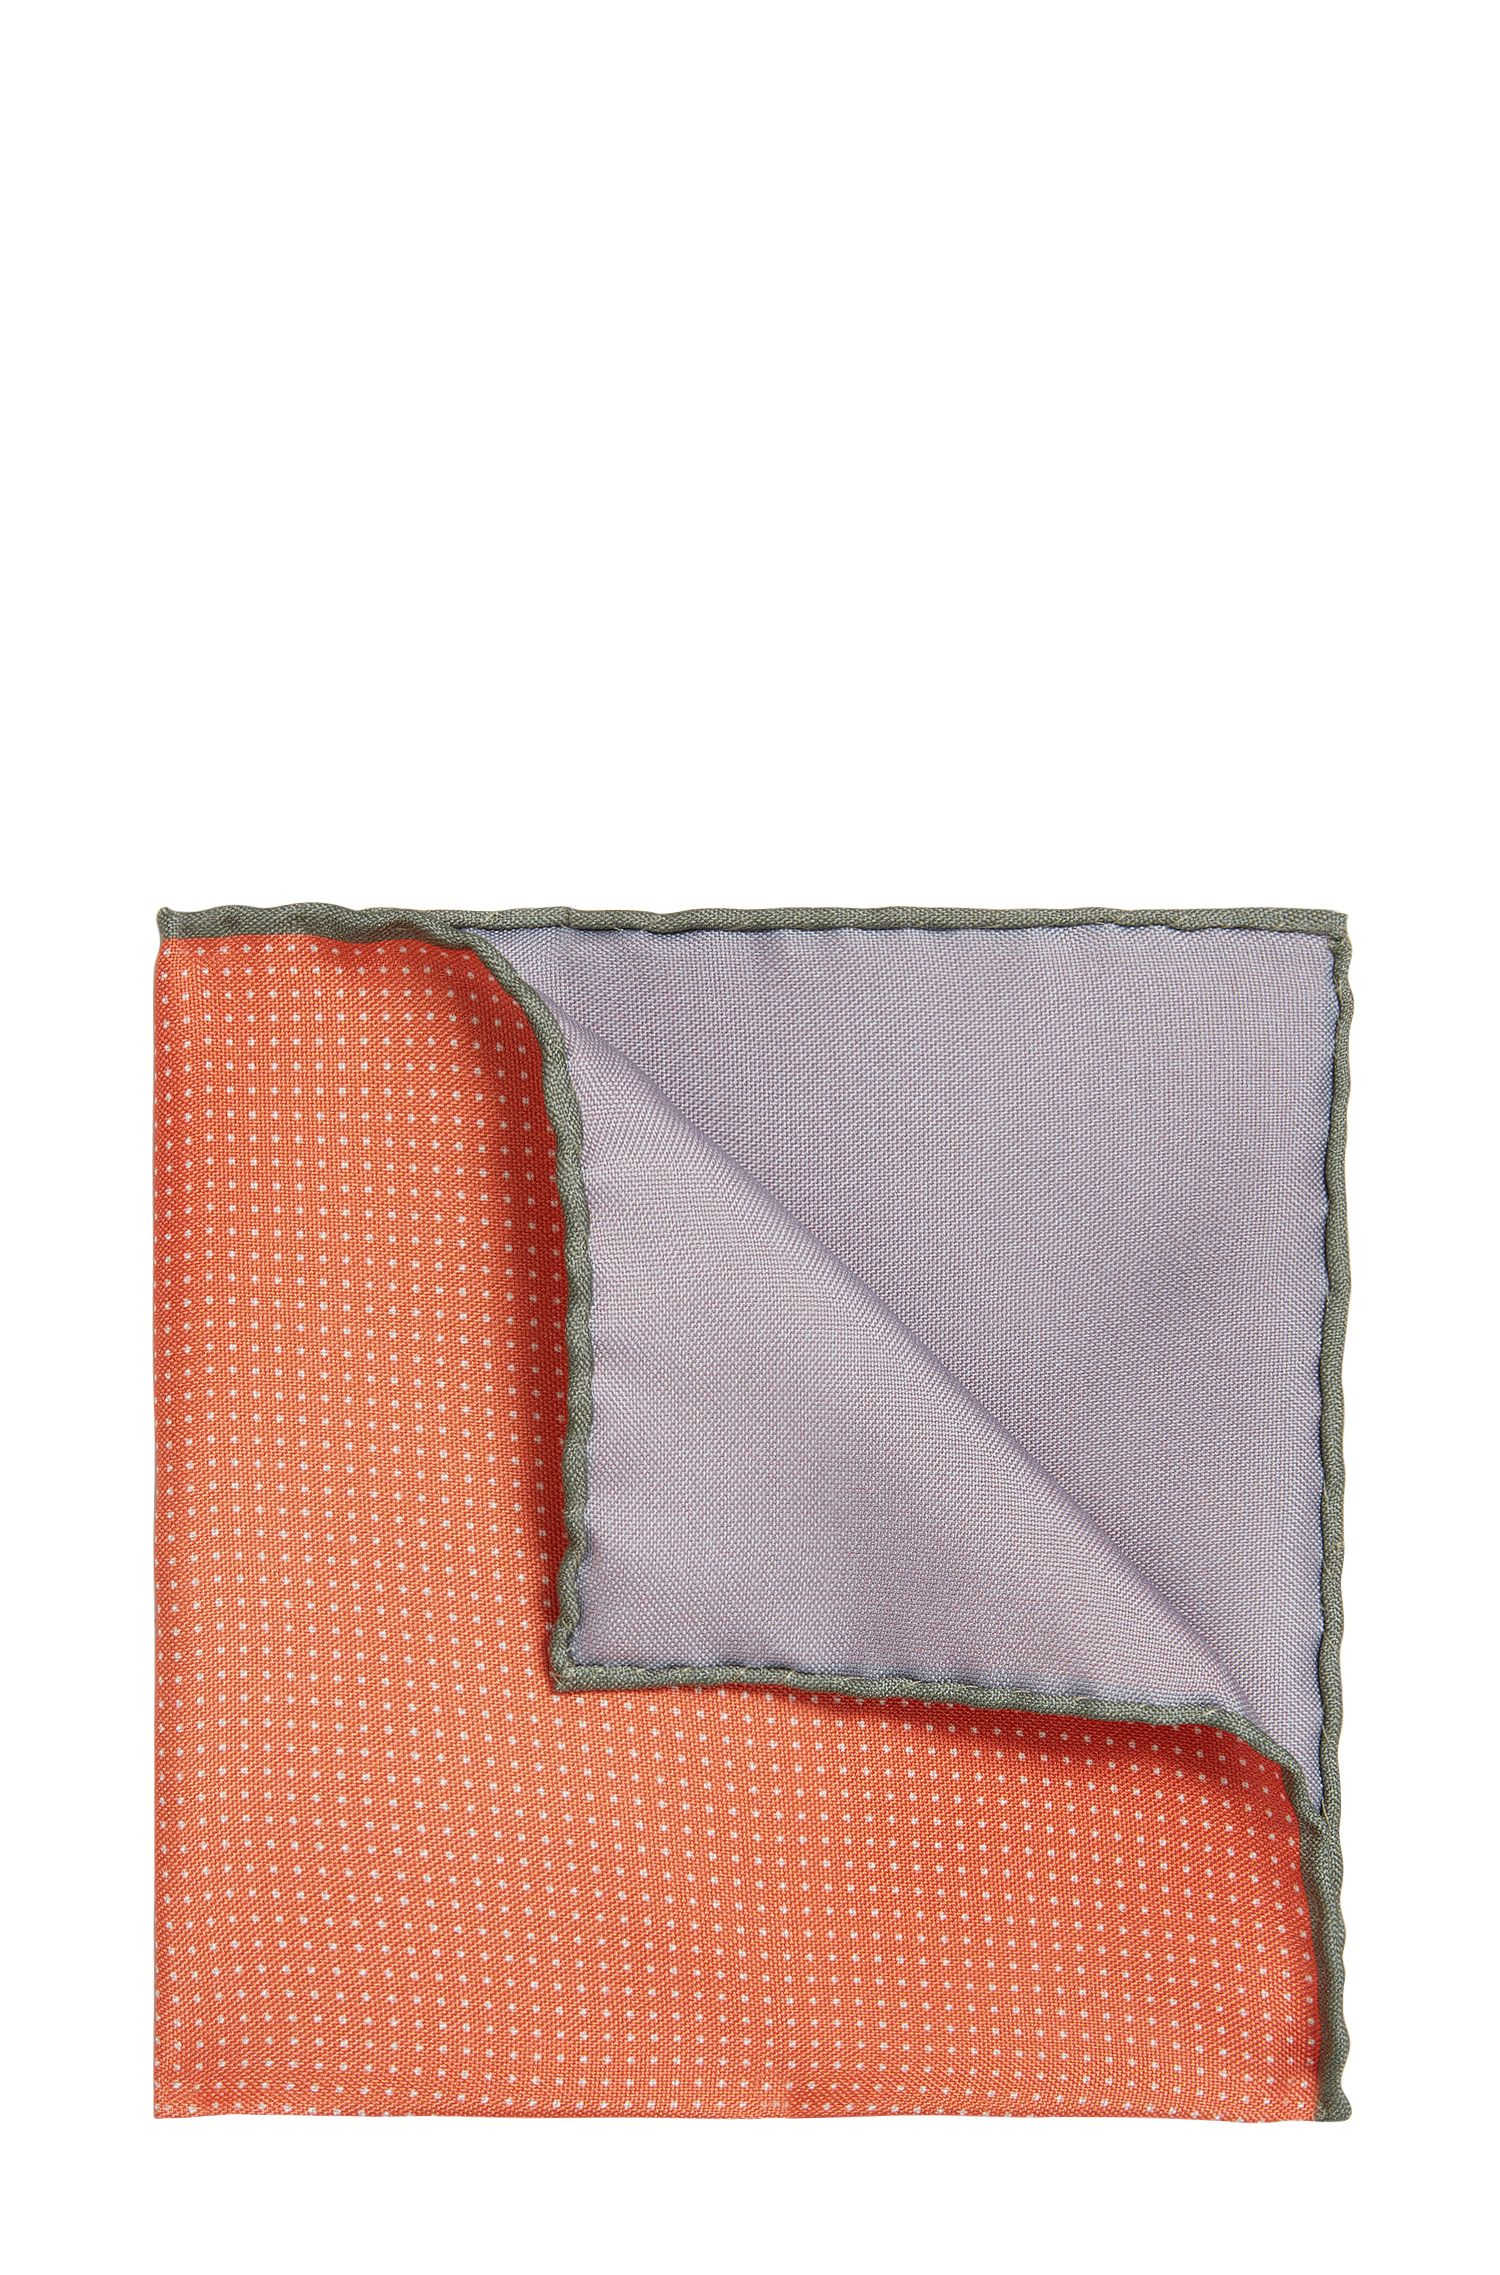 Pochette en soie Tailored à pois : « T-Pocket sq. 33x33 cm »